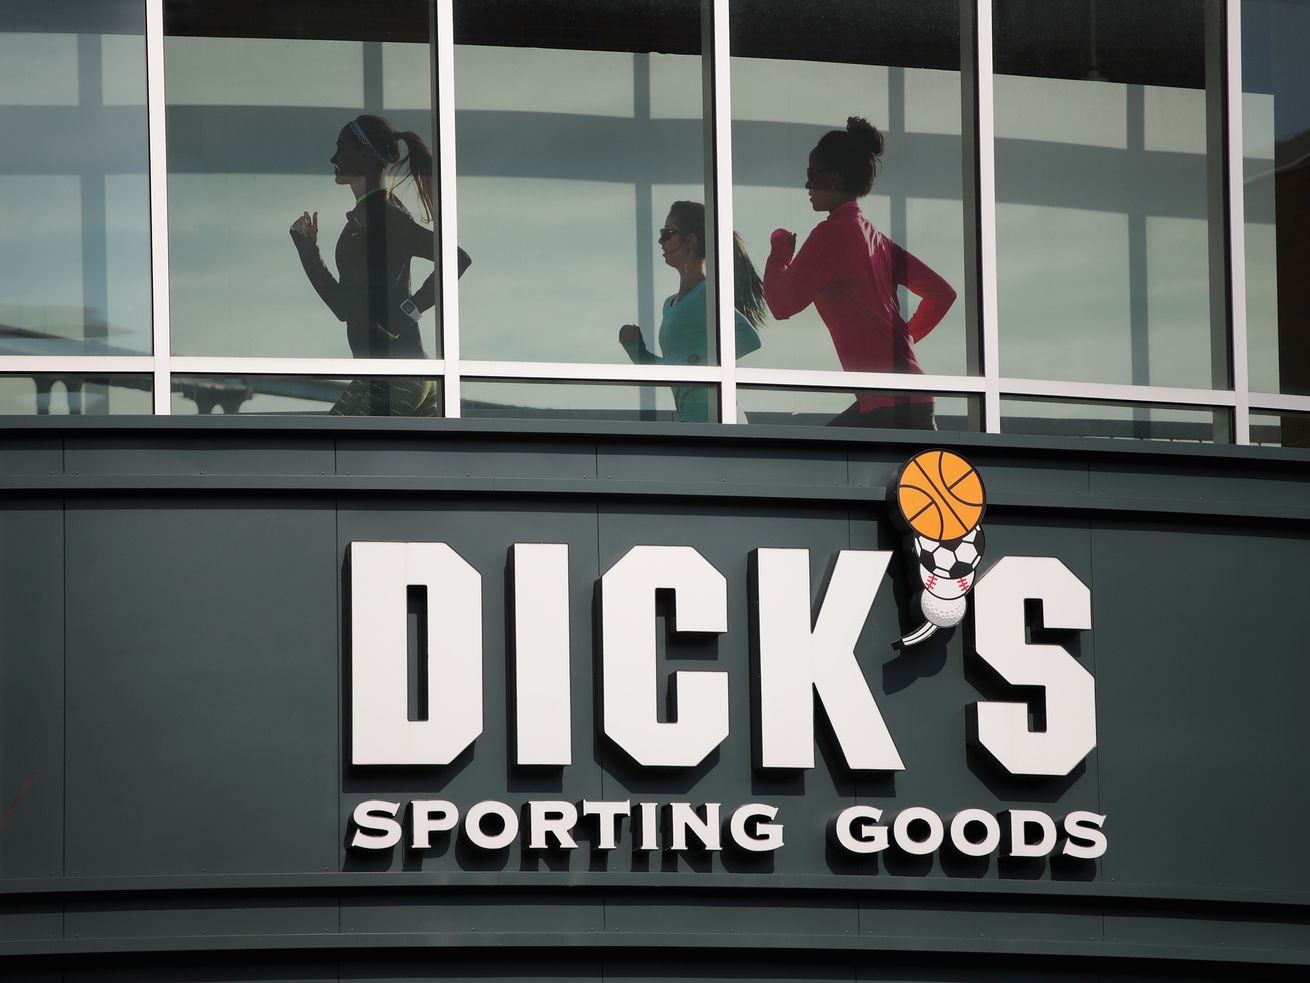 Dick's Sporting Goods destroyed $5 million worth of guns it pulled from its stores